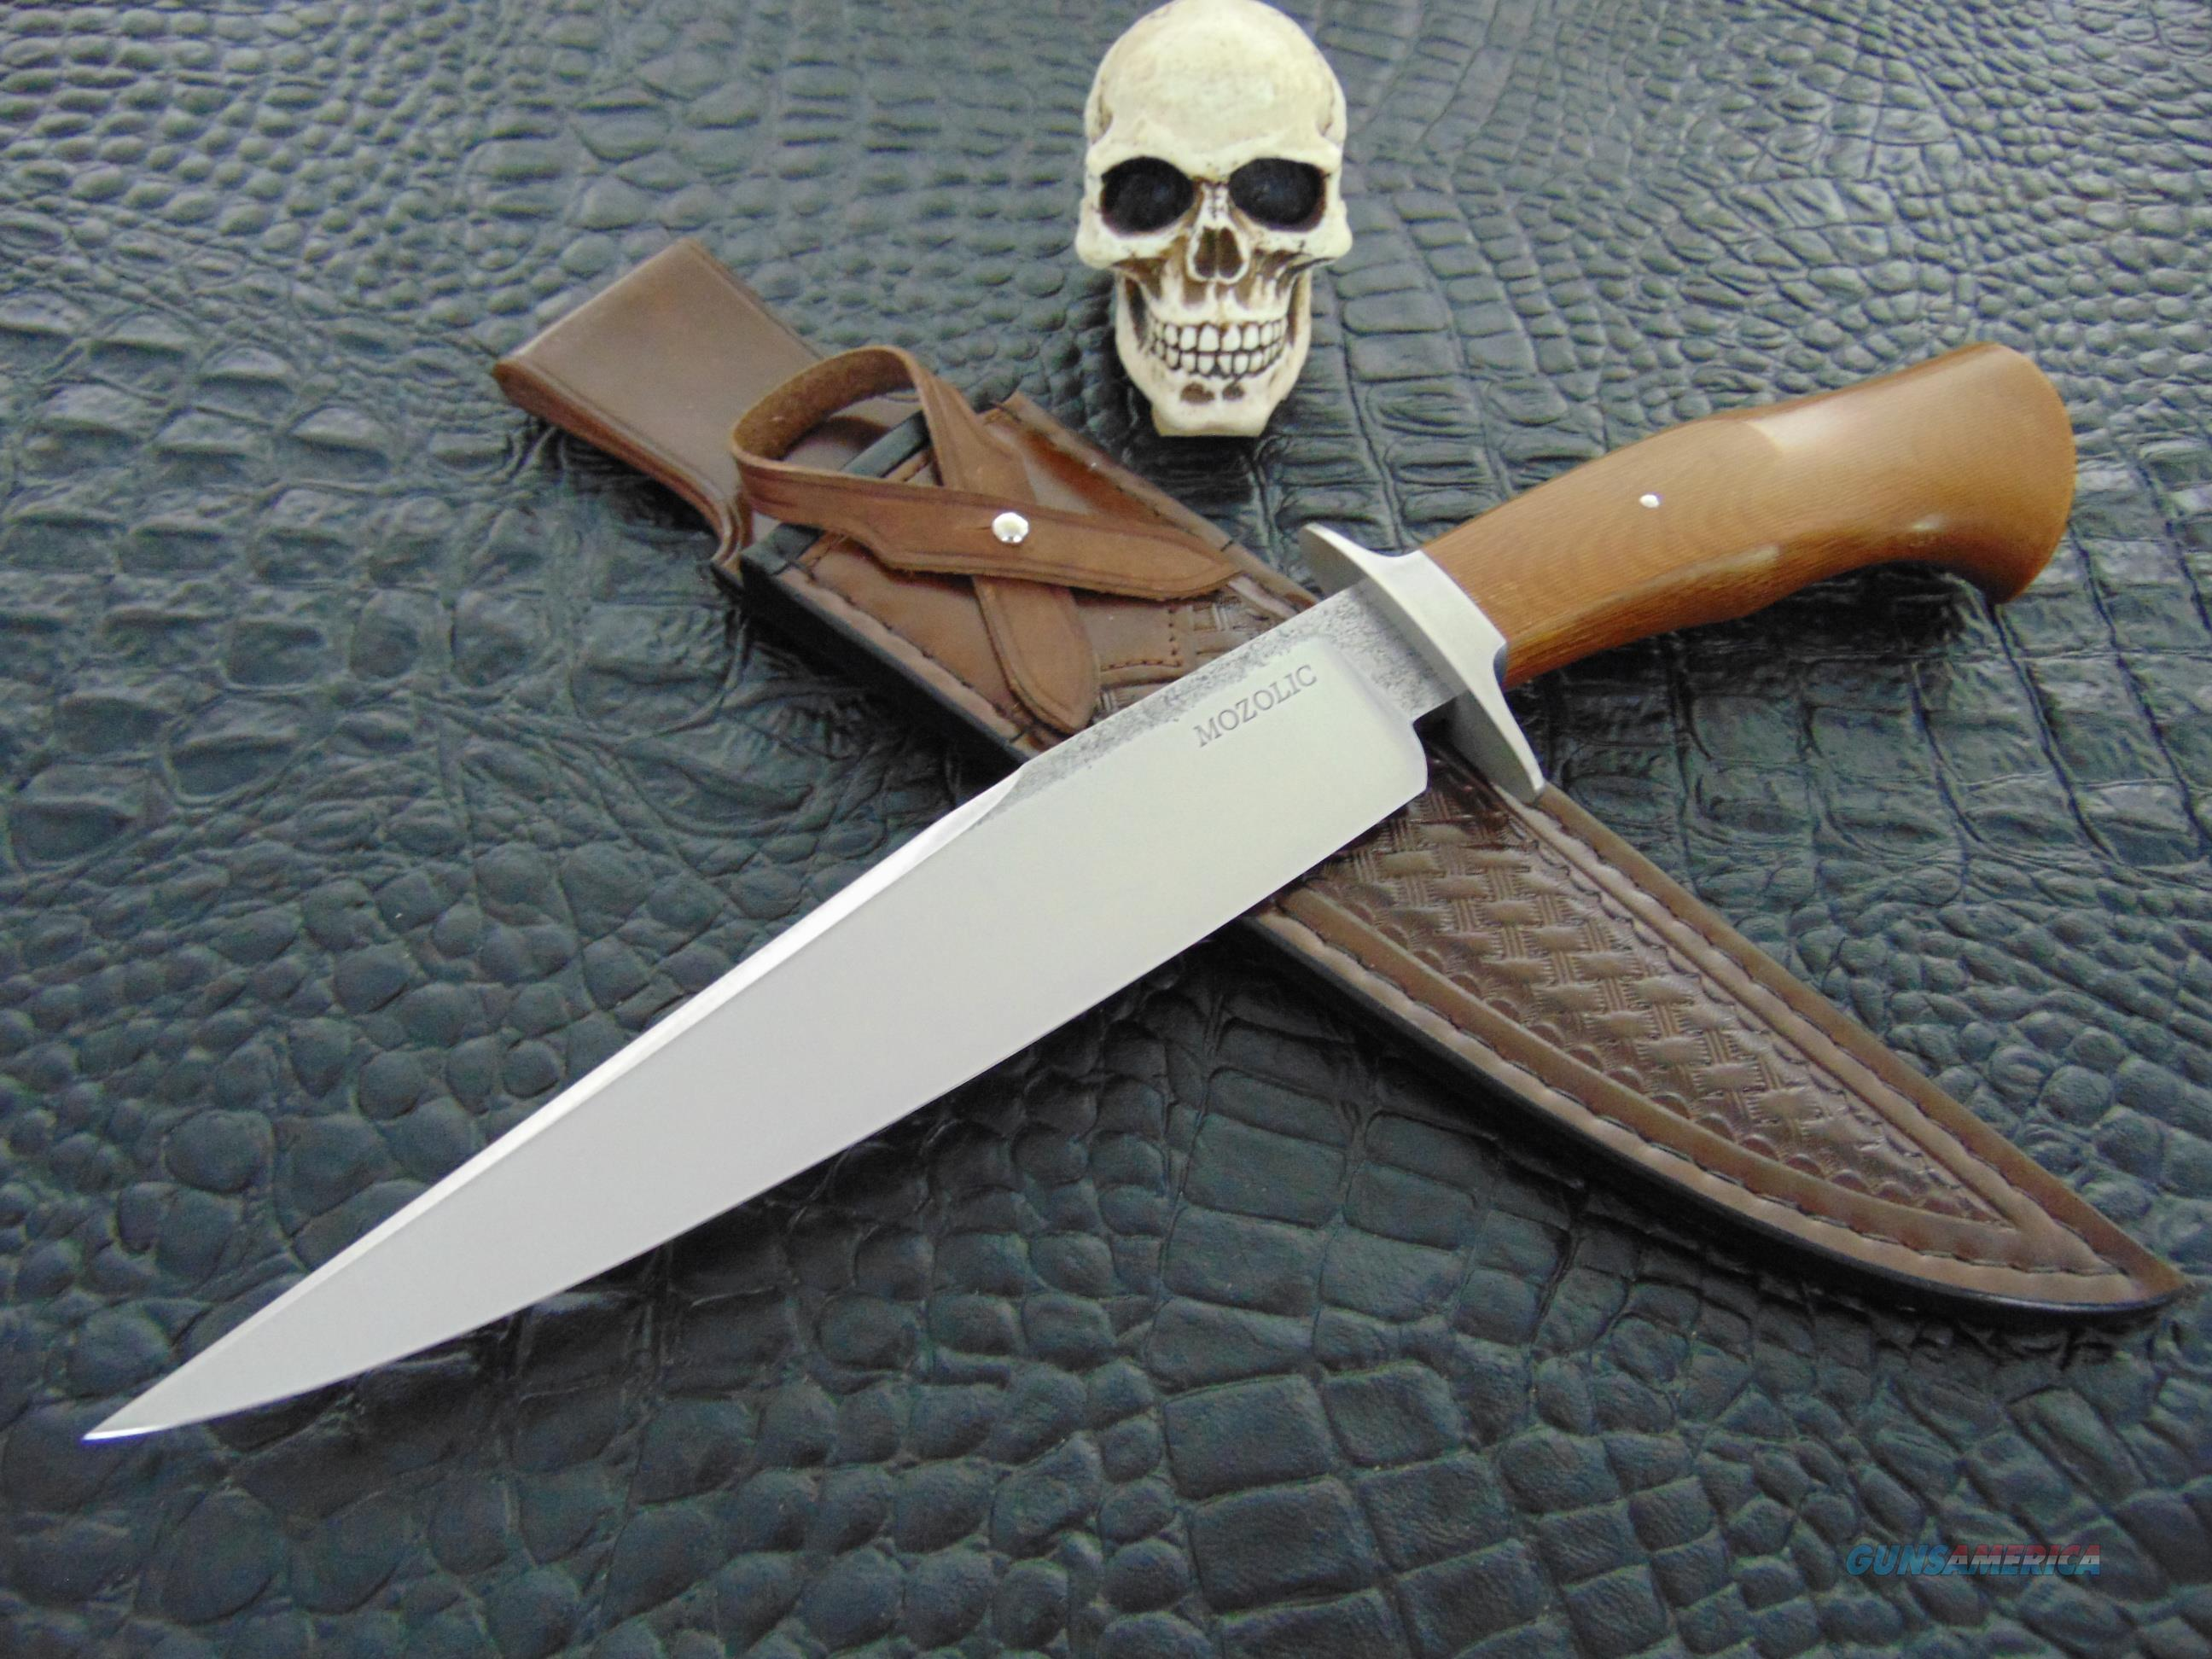 Milan Mozolic Gorgeous Hand Forged W2 Fighter / Bowie  Non-Guns > Knives/Swords > Knives > Fixed Blade > Hand Made